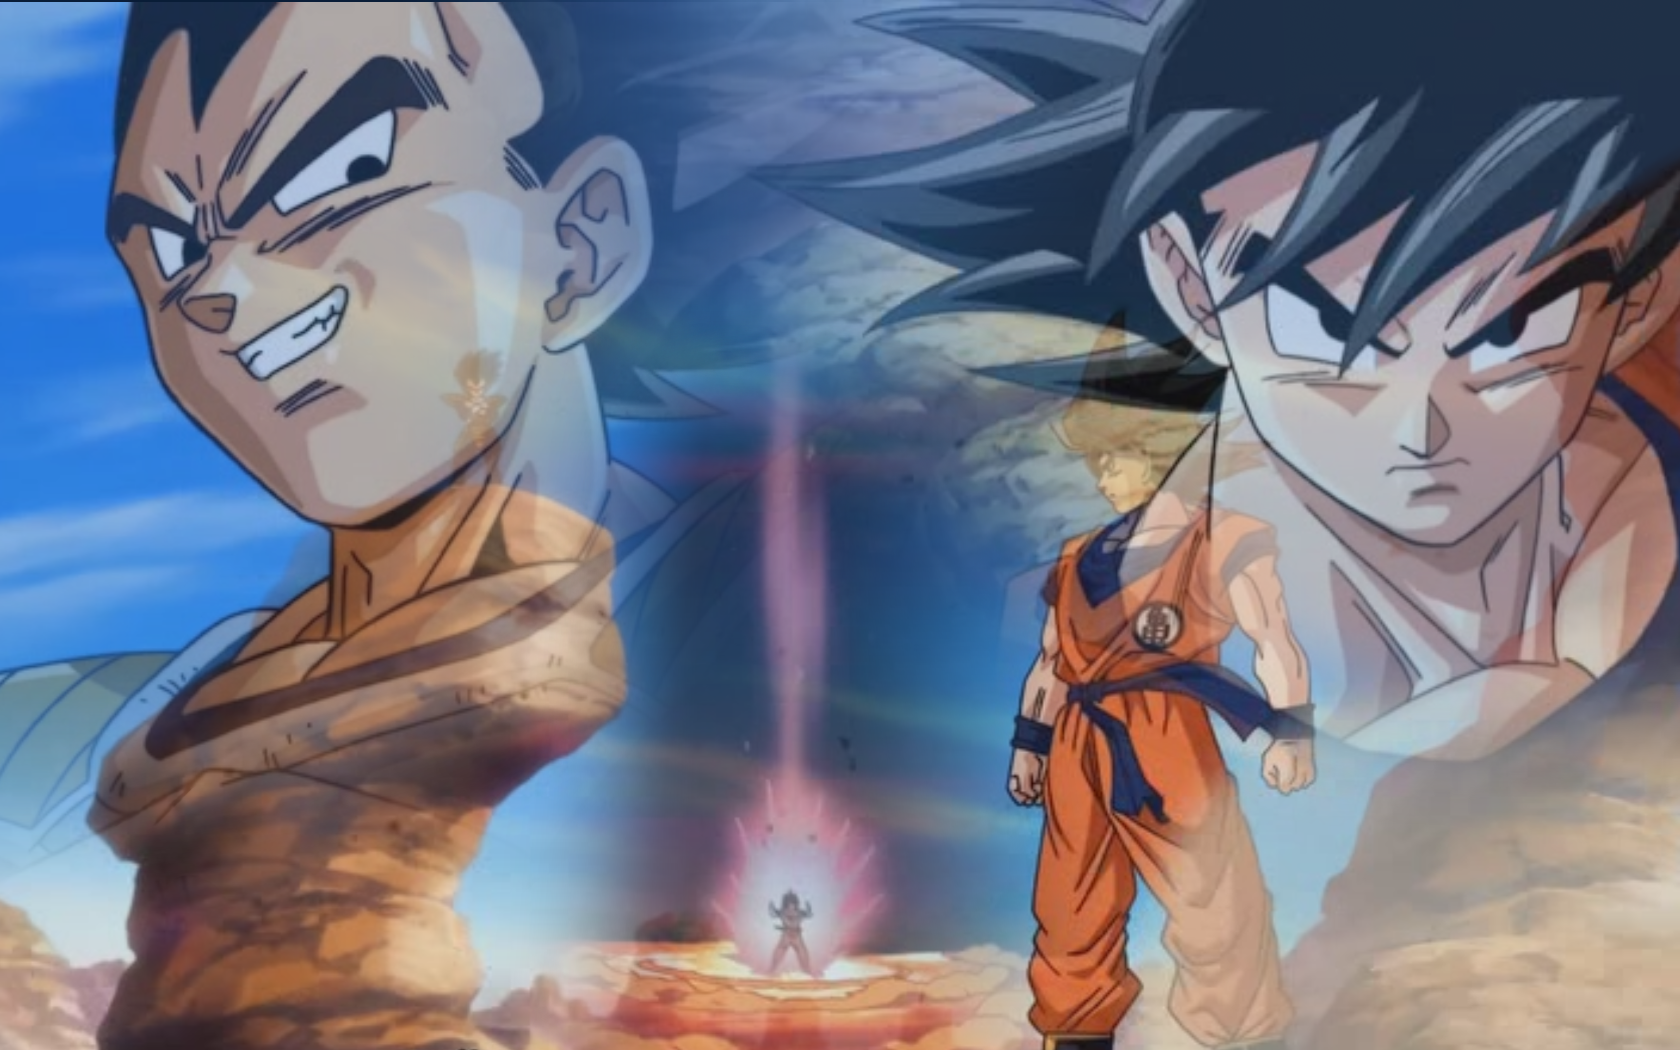 Cultural philosophy isseicreekphilosophy 39 s blog - Dragon ball z goku son ...